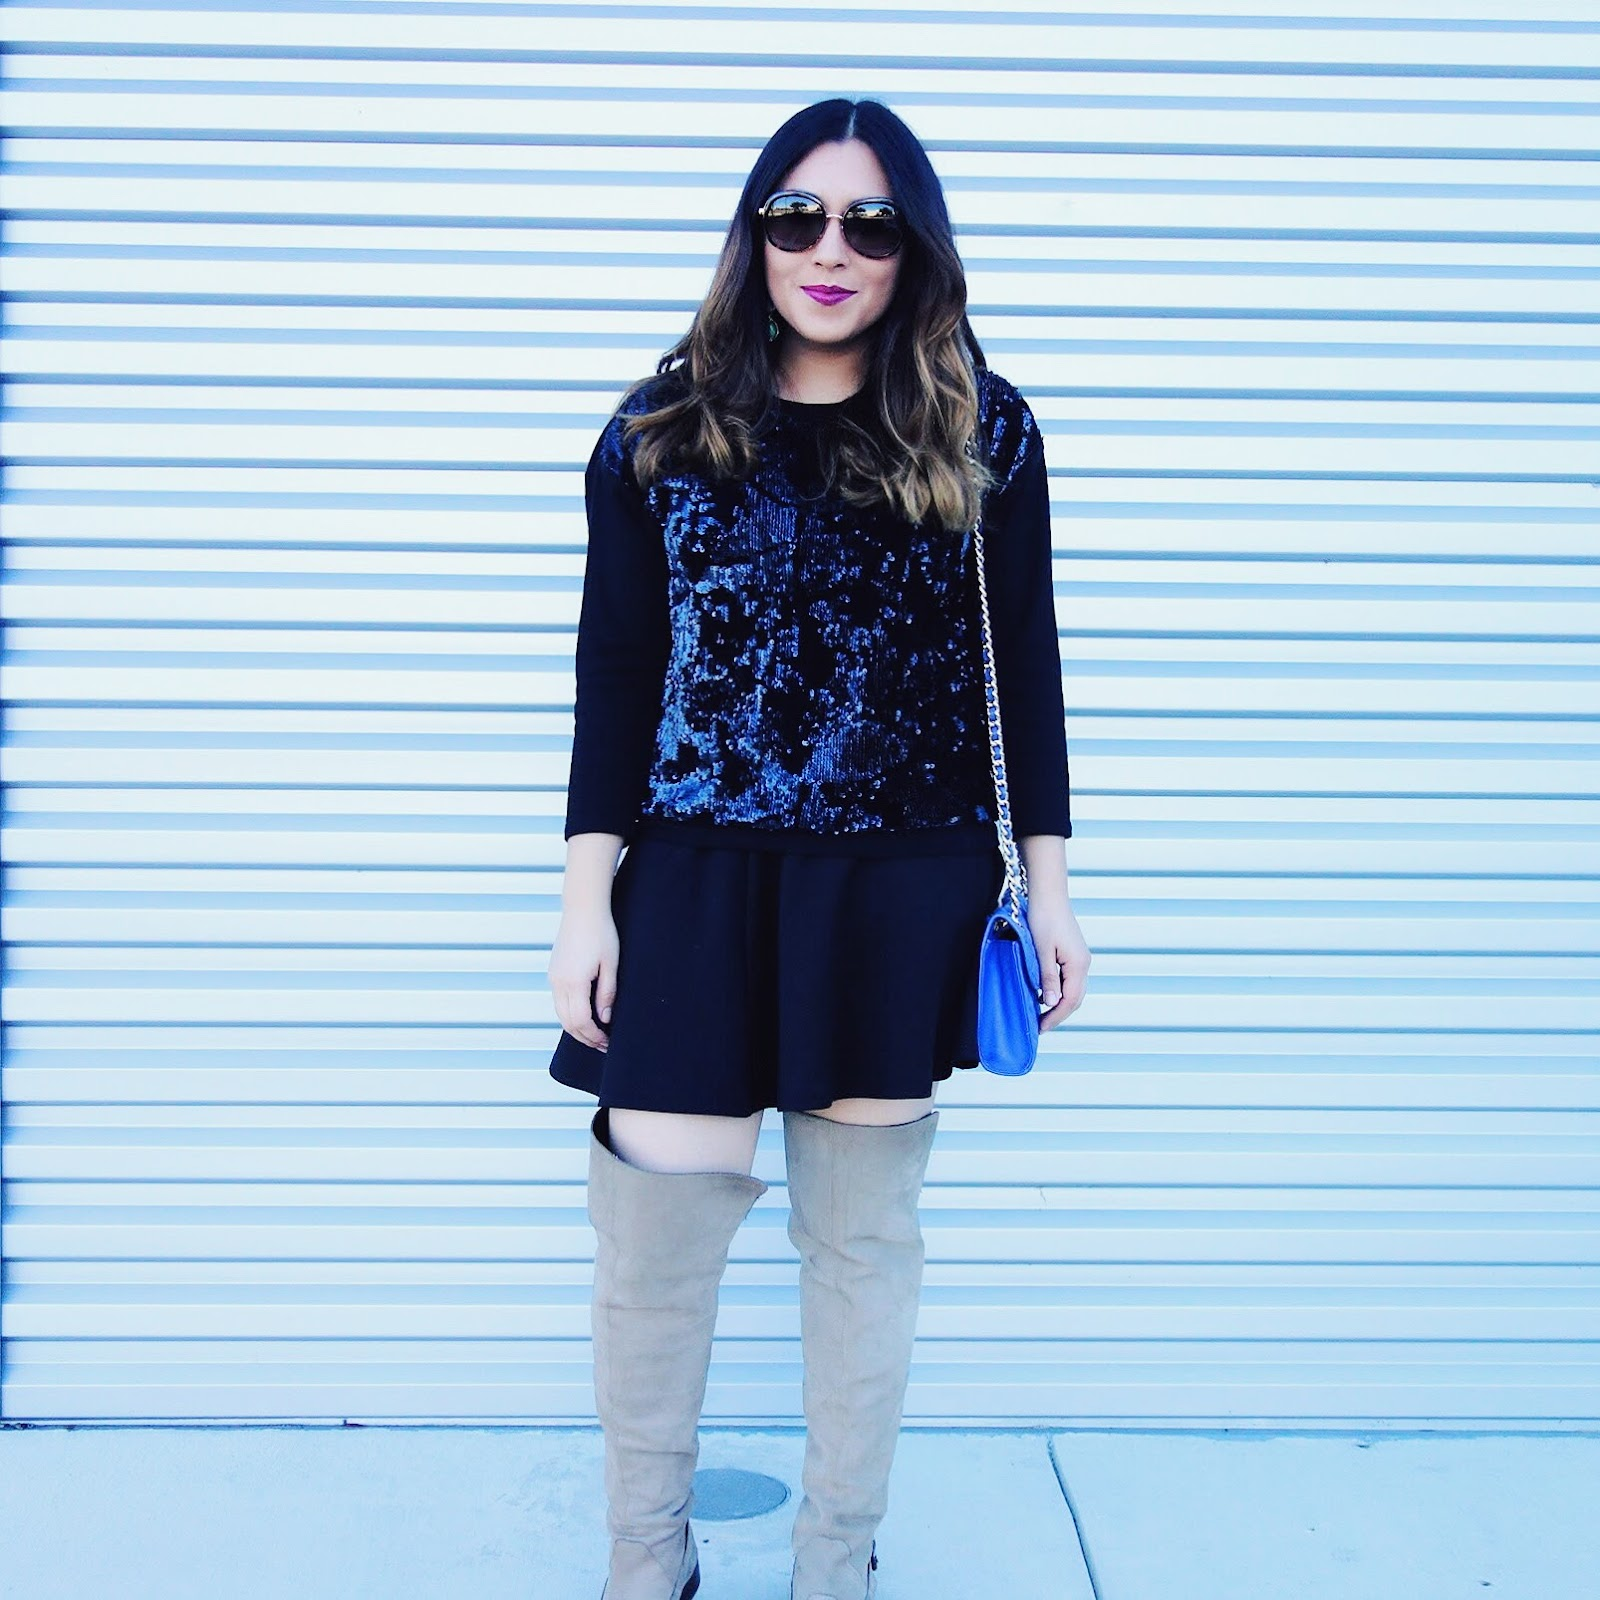 featured, sequins for brunch, sequins, day time outfit, street style, casual